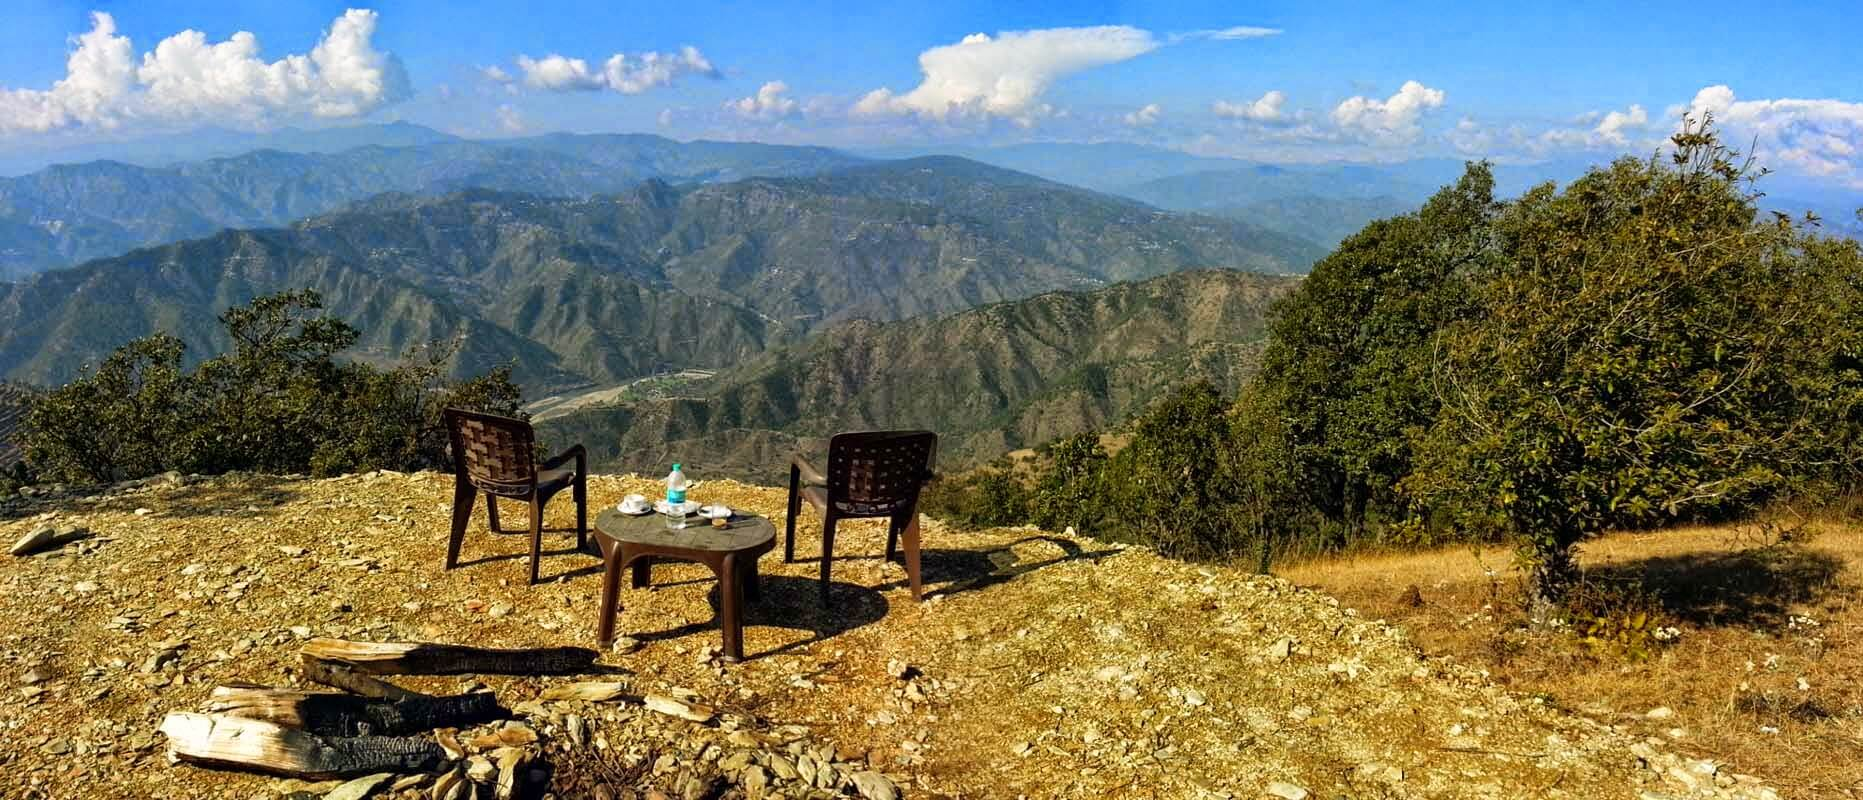 View - Essence of Nature - Almora, India